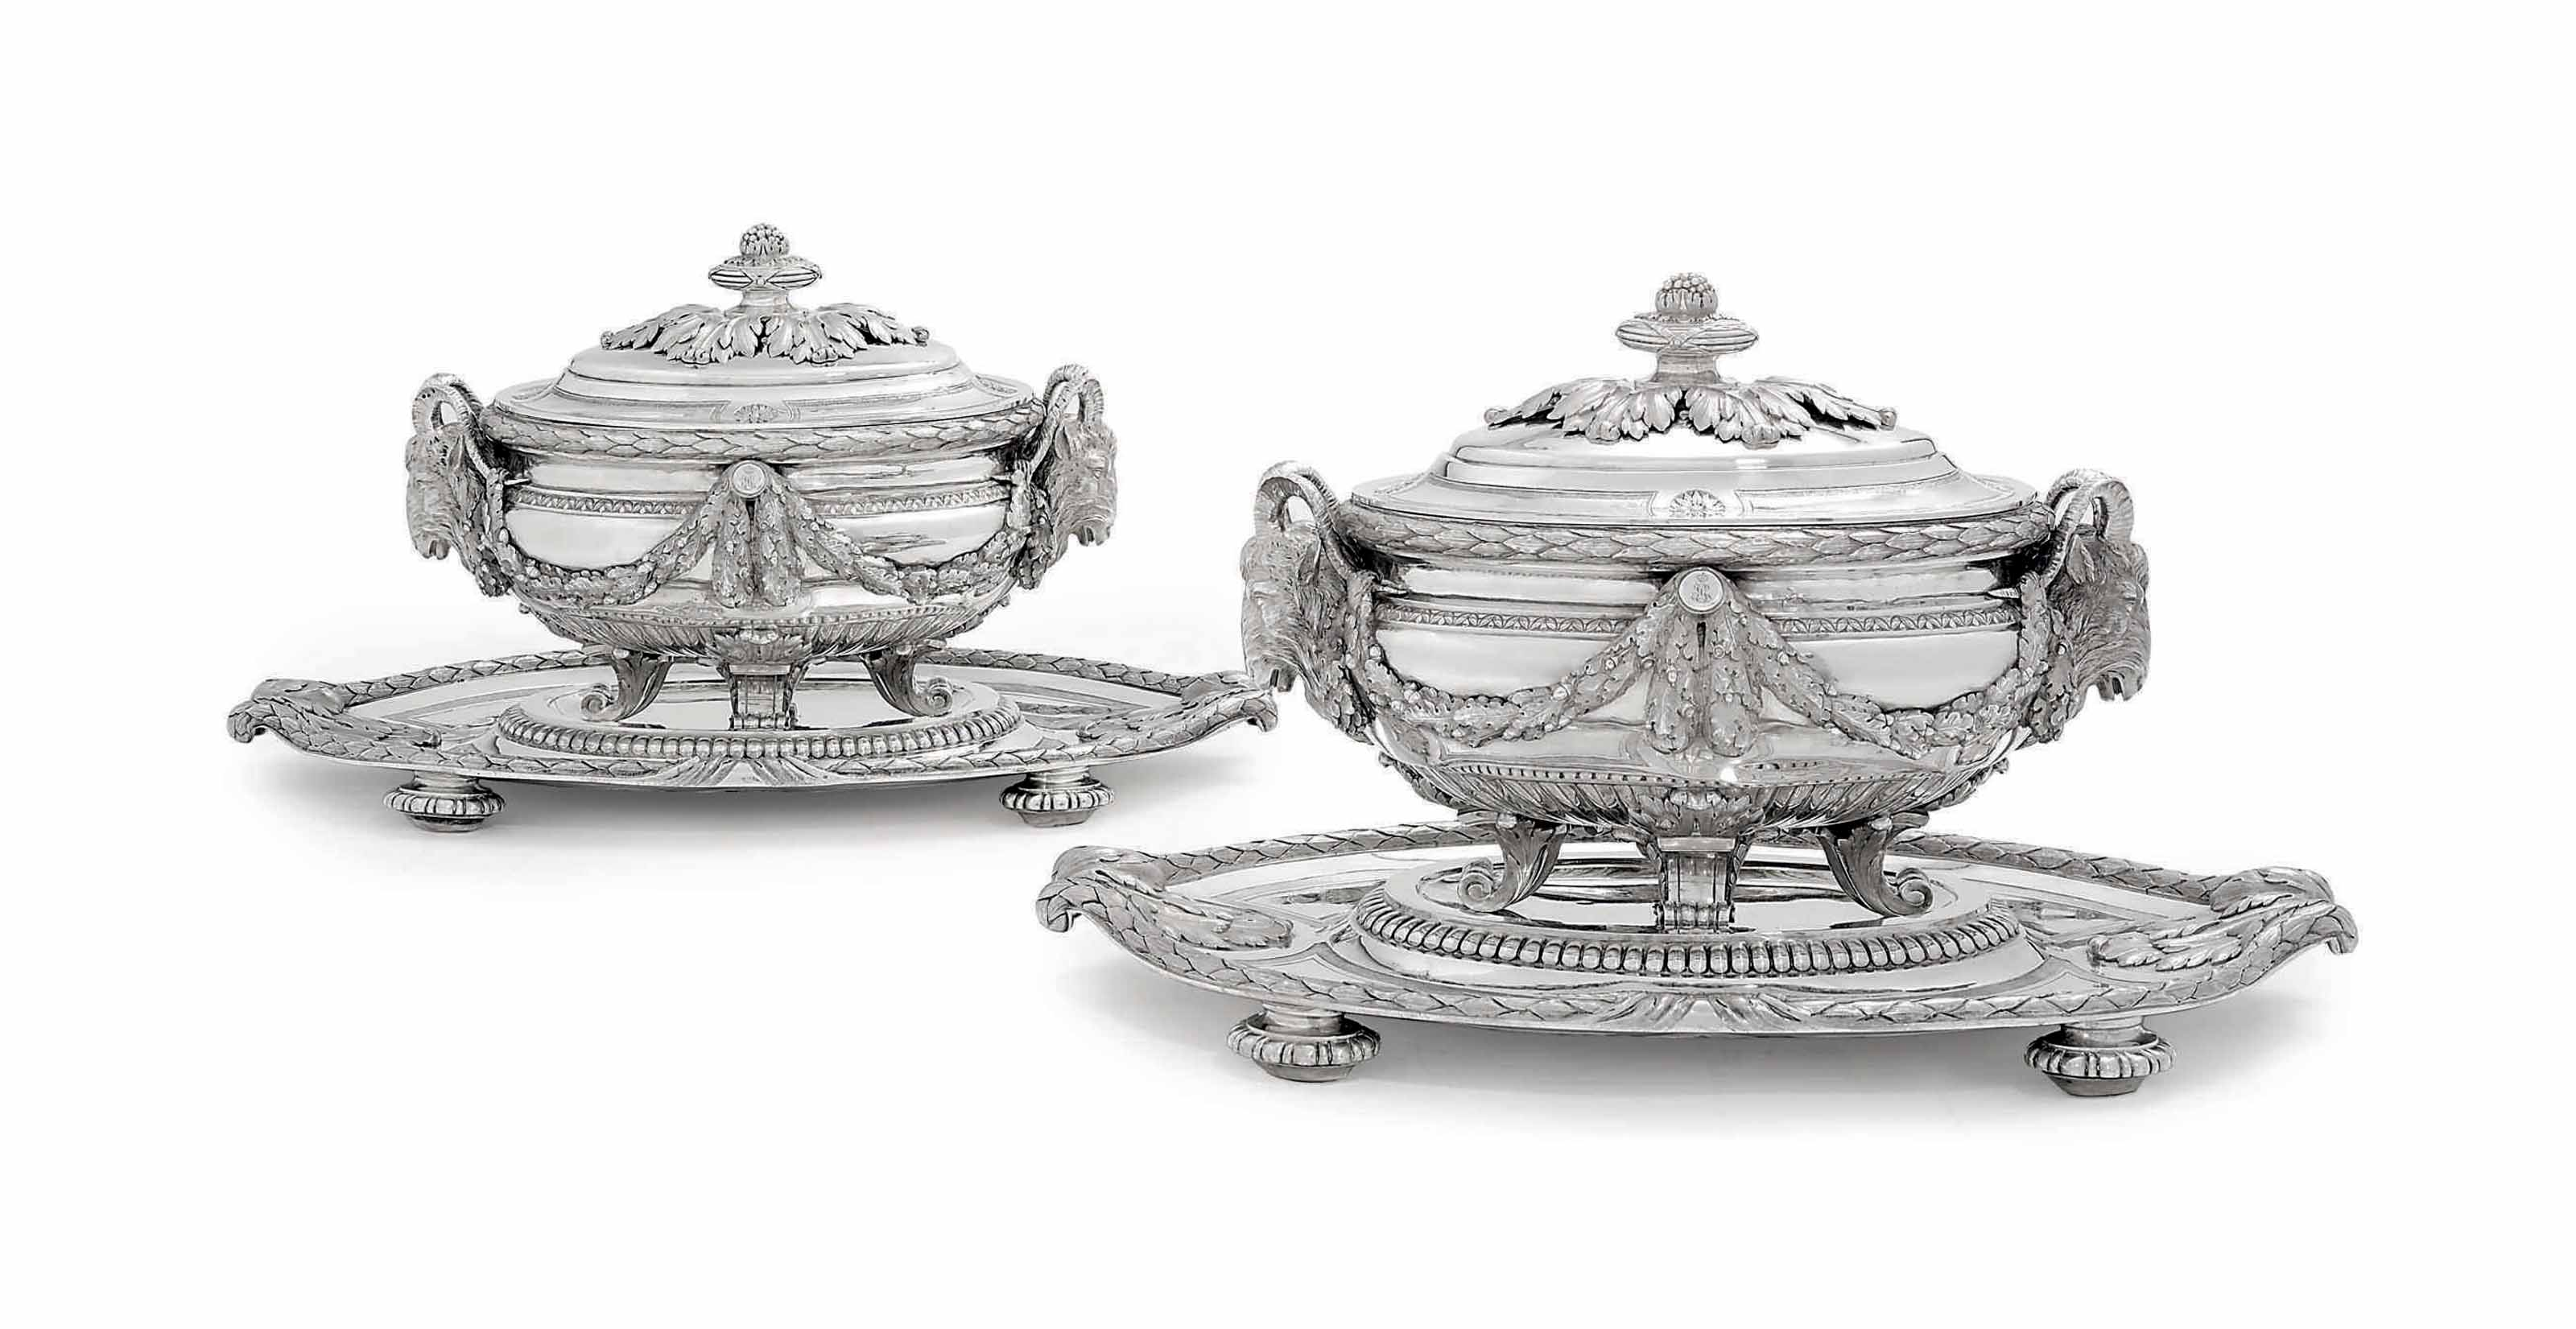 AN IMPORTANT PAIR OF LOUIS XVI SILVER SOUP-TUREENS, COVERS, STANDS AND LINERS